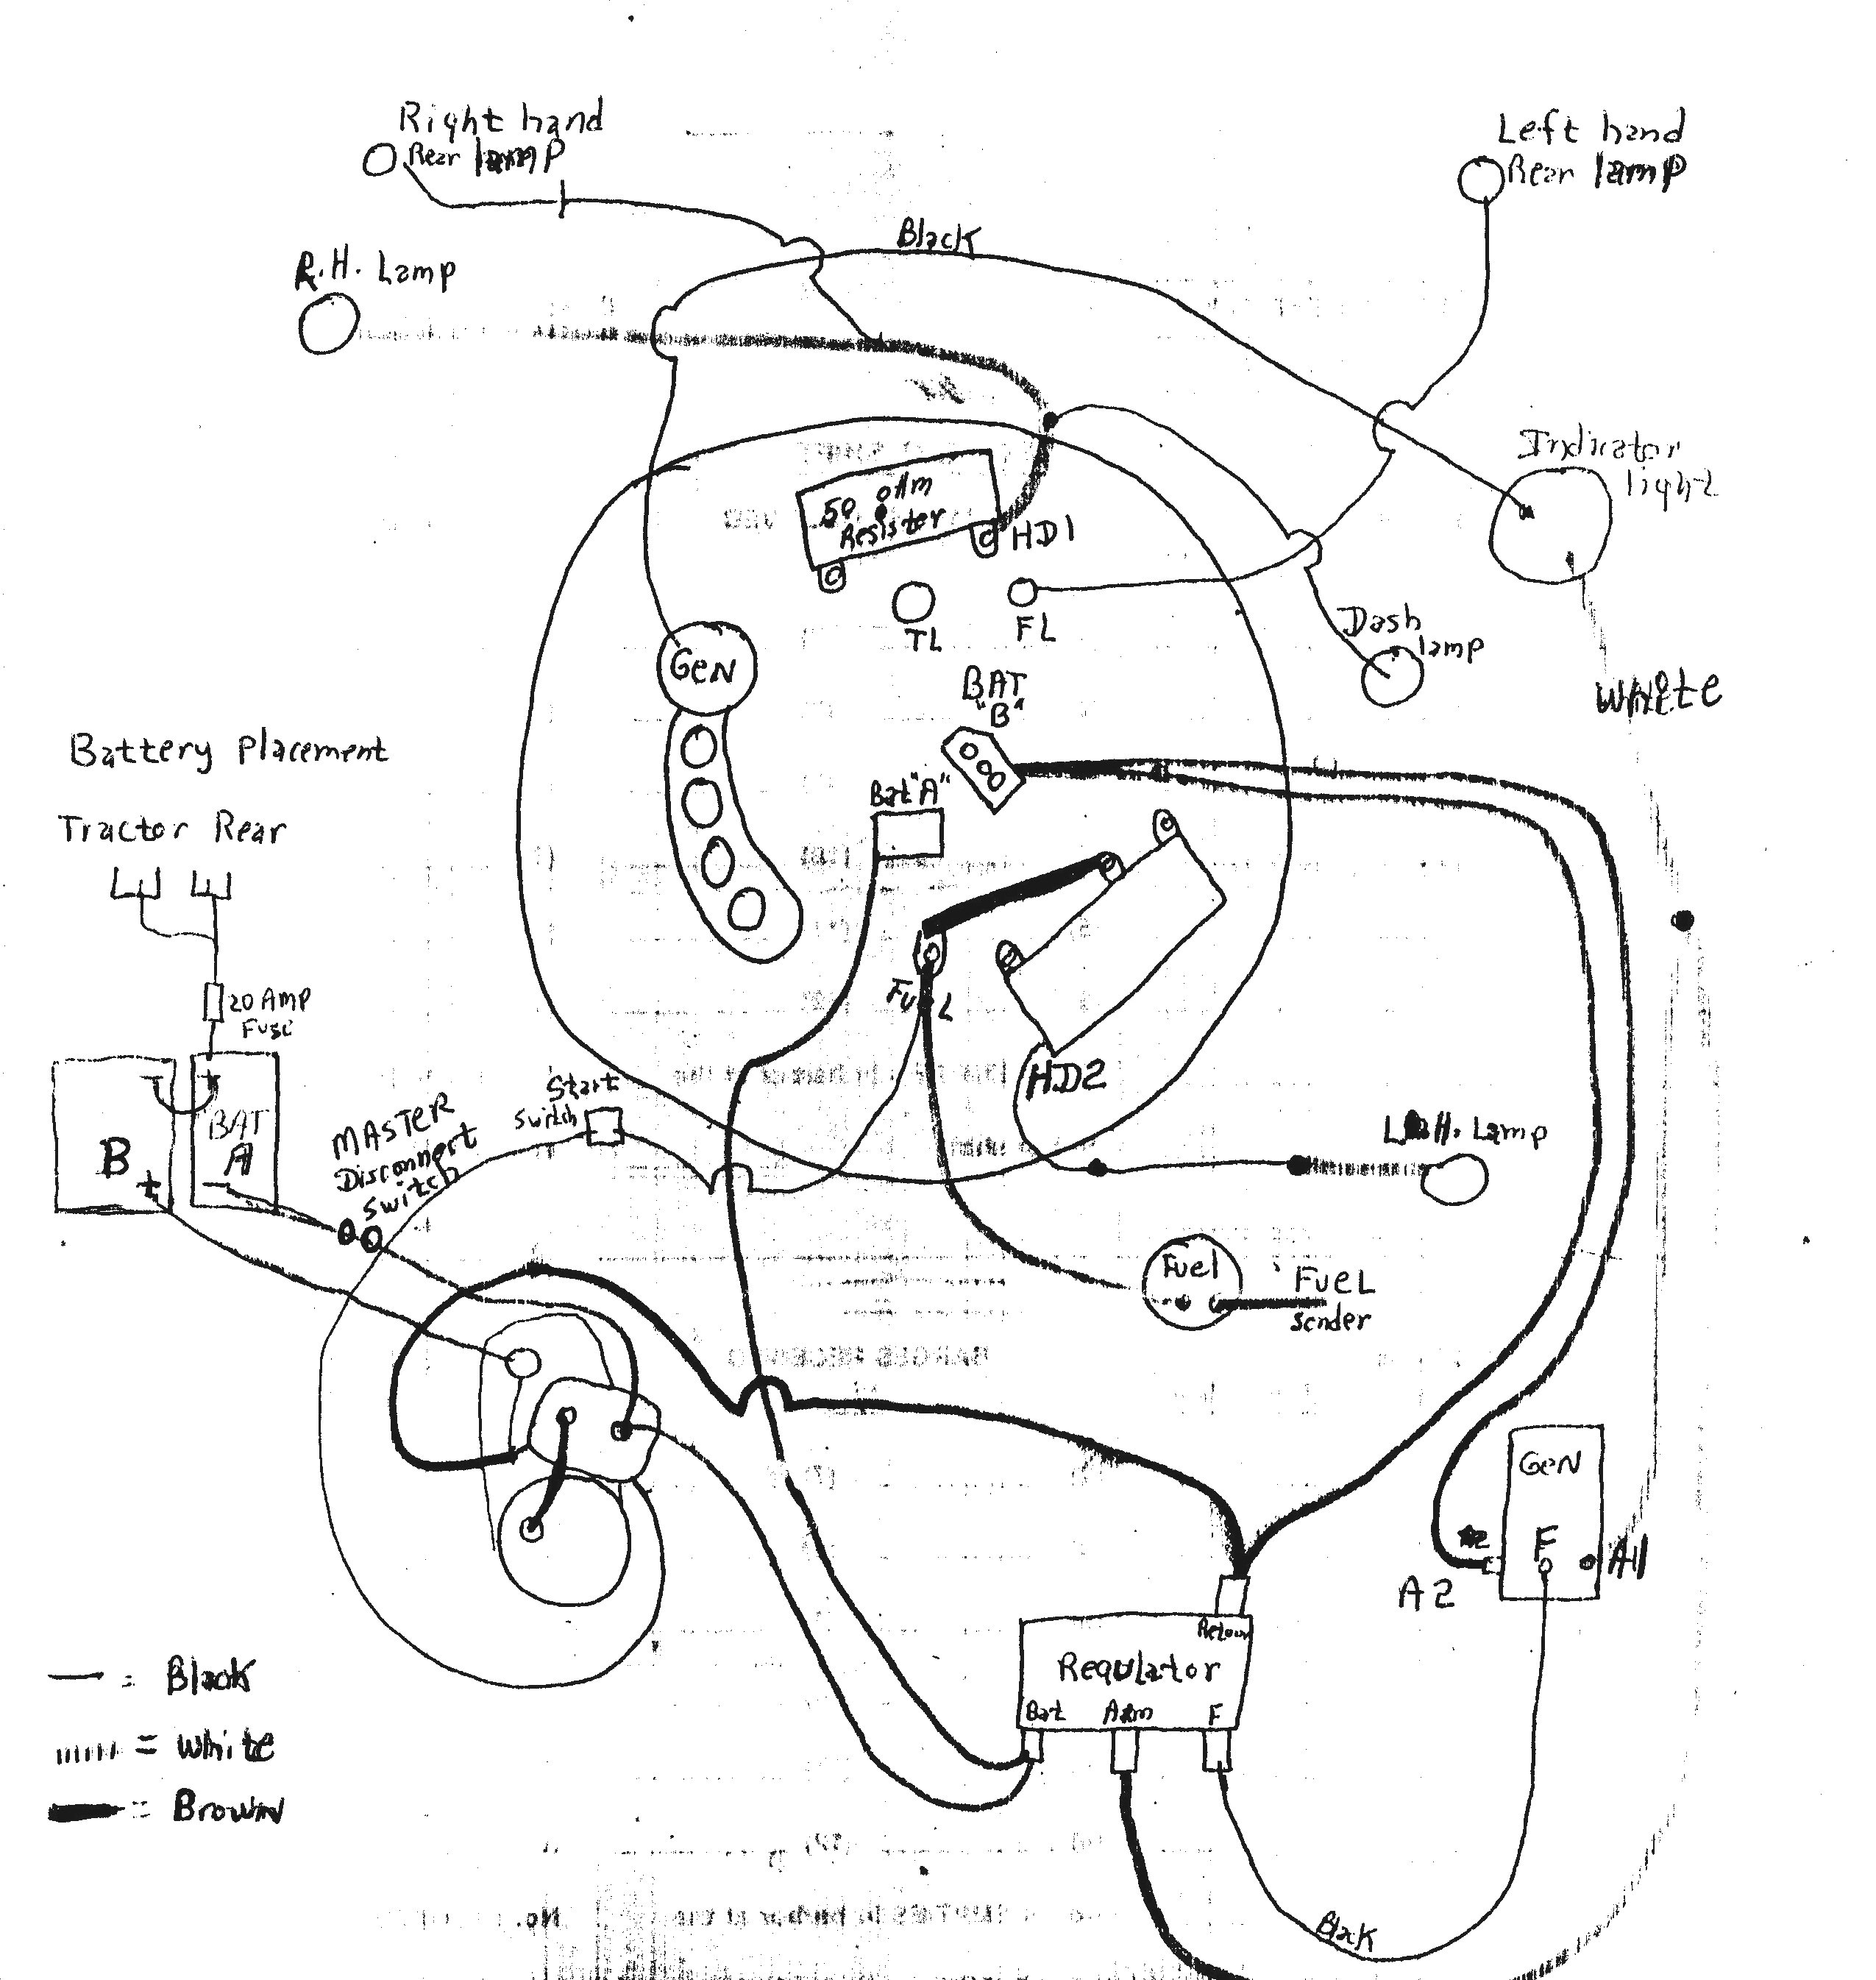 24volt_wiring_diagram john deere 4010 wiring diagram john deere 4020 starter wiring John Deere 3010 Transmission Diagram at creativeand.co